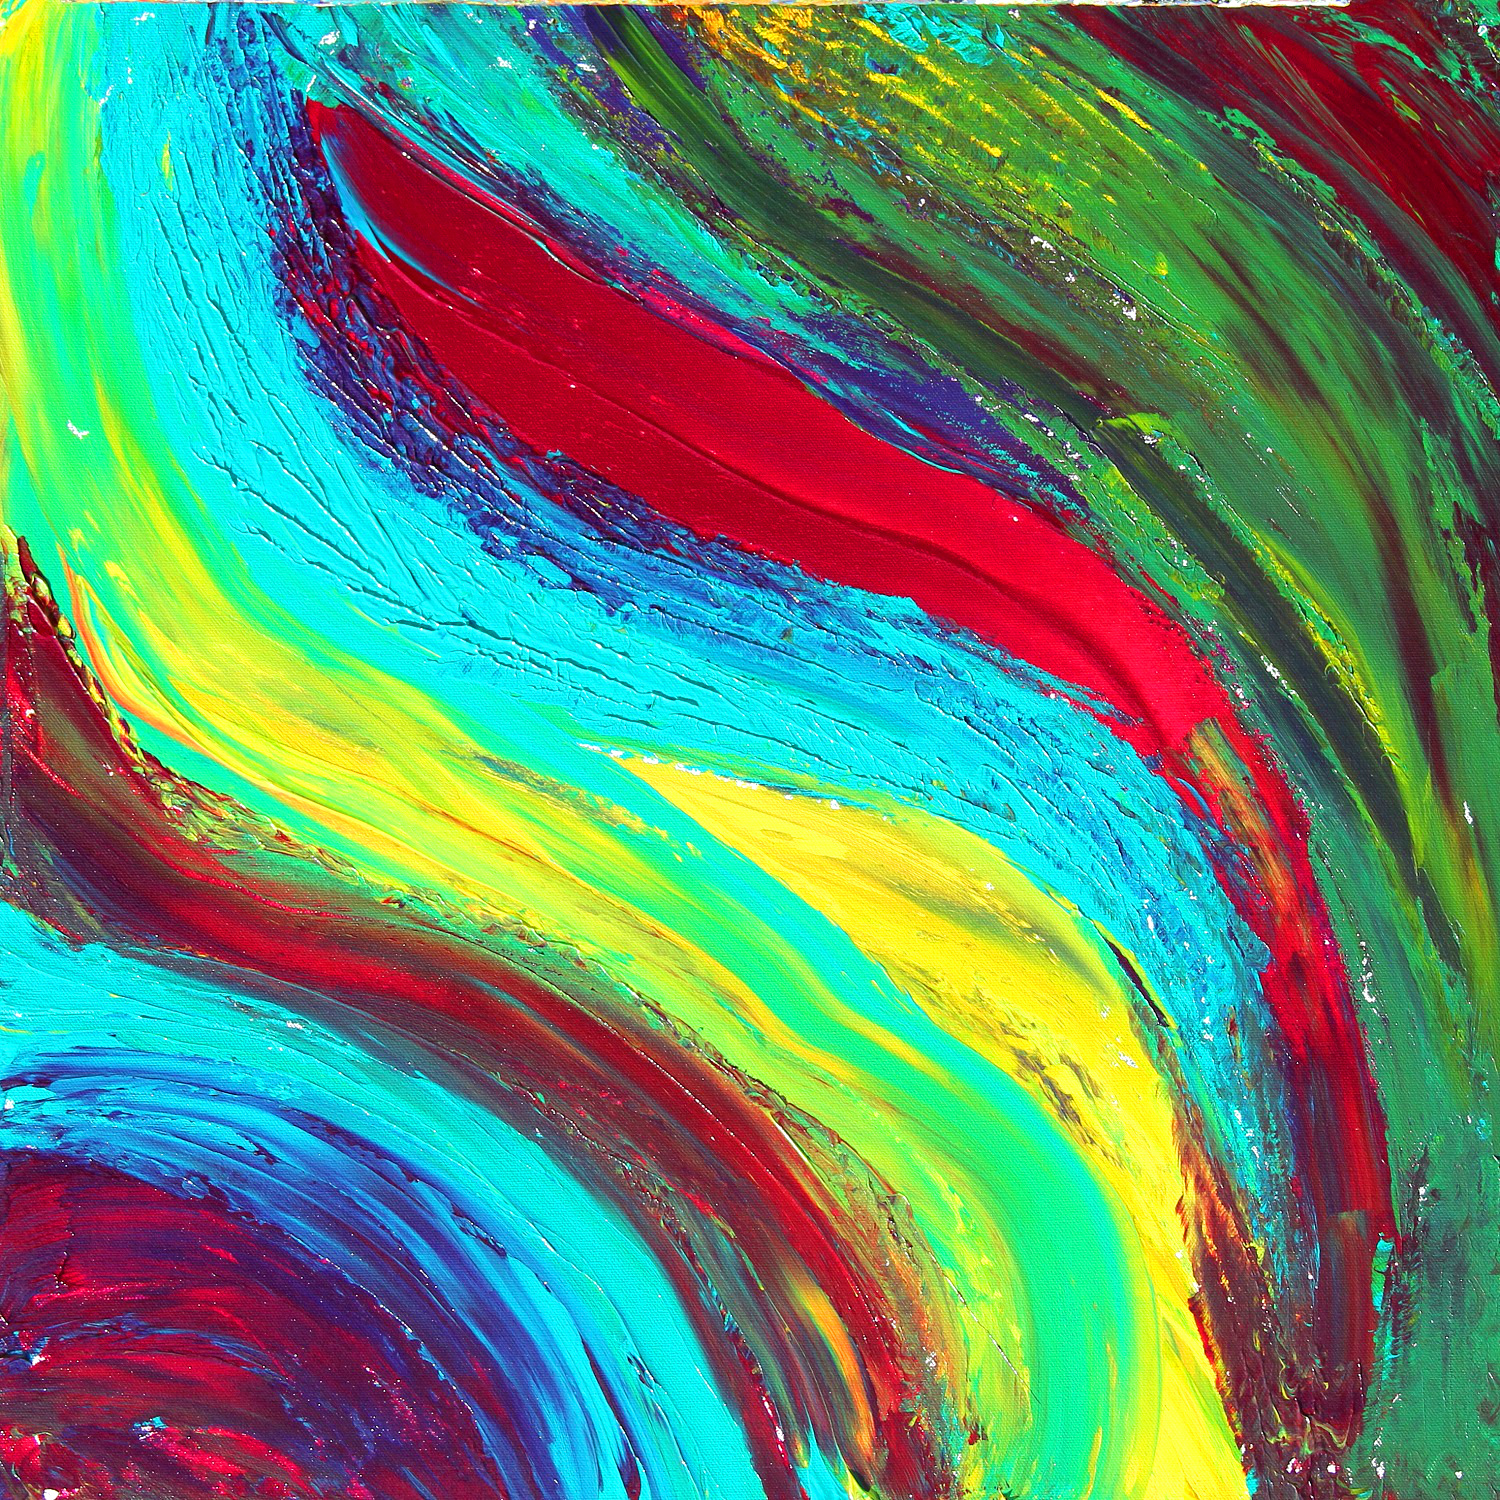 Free Photo: Colorful Paint Abstract